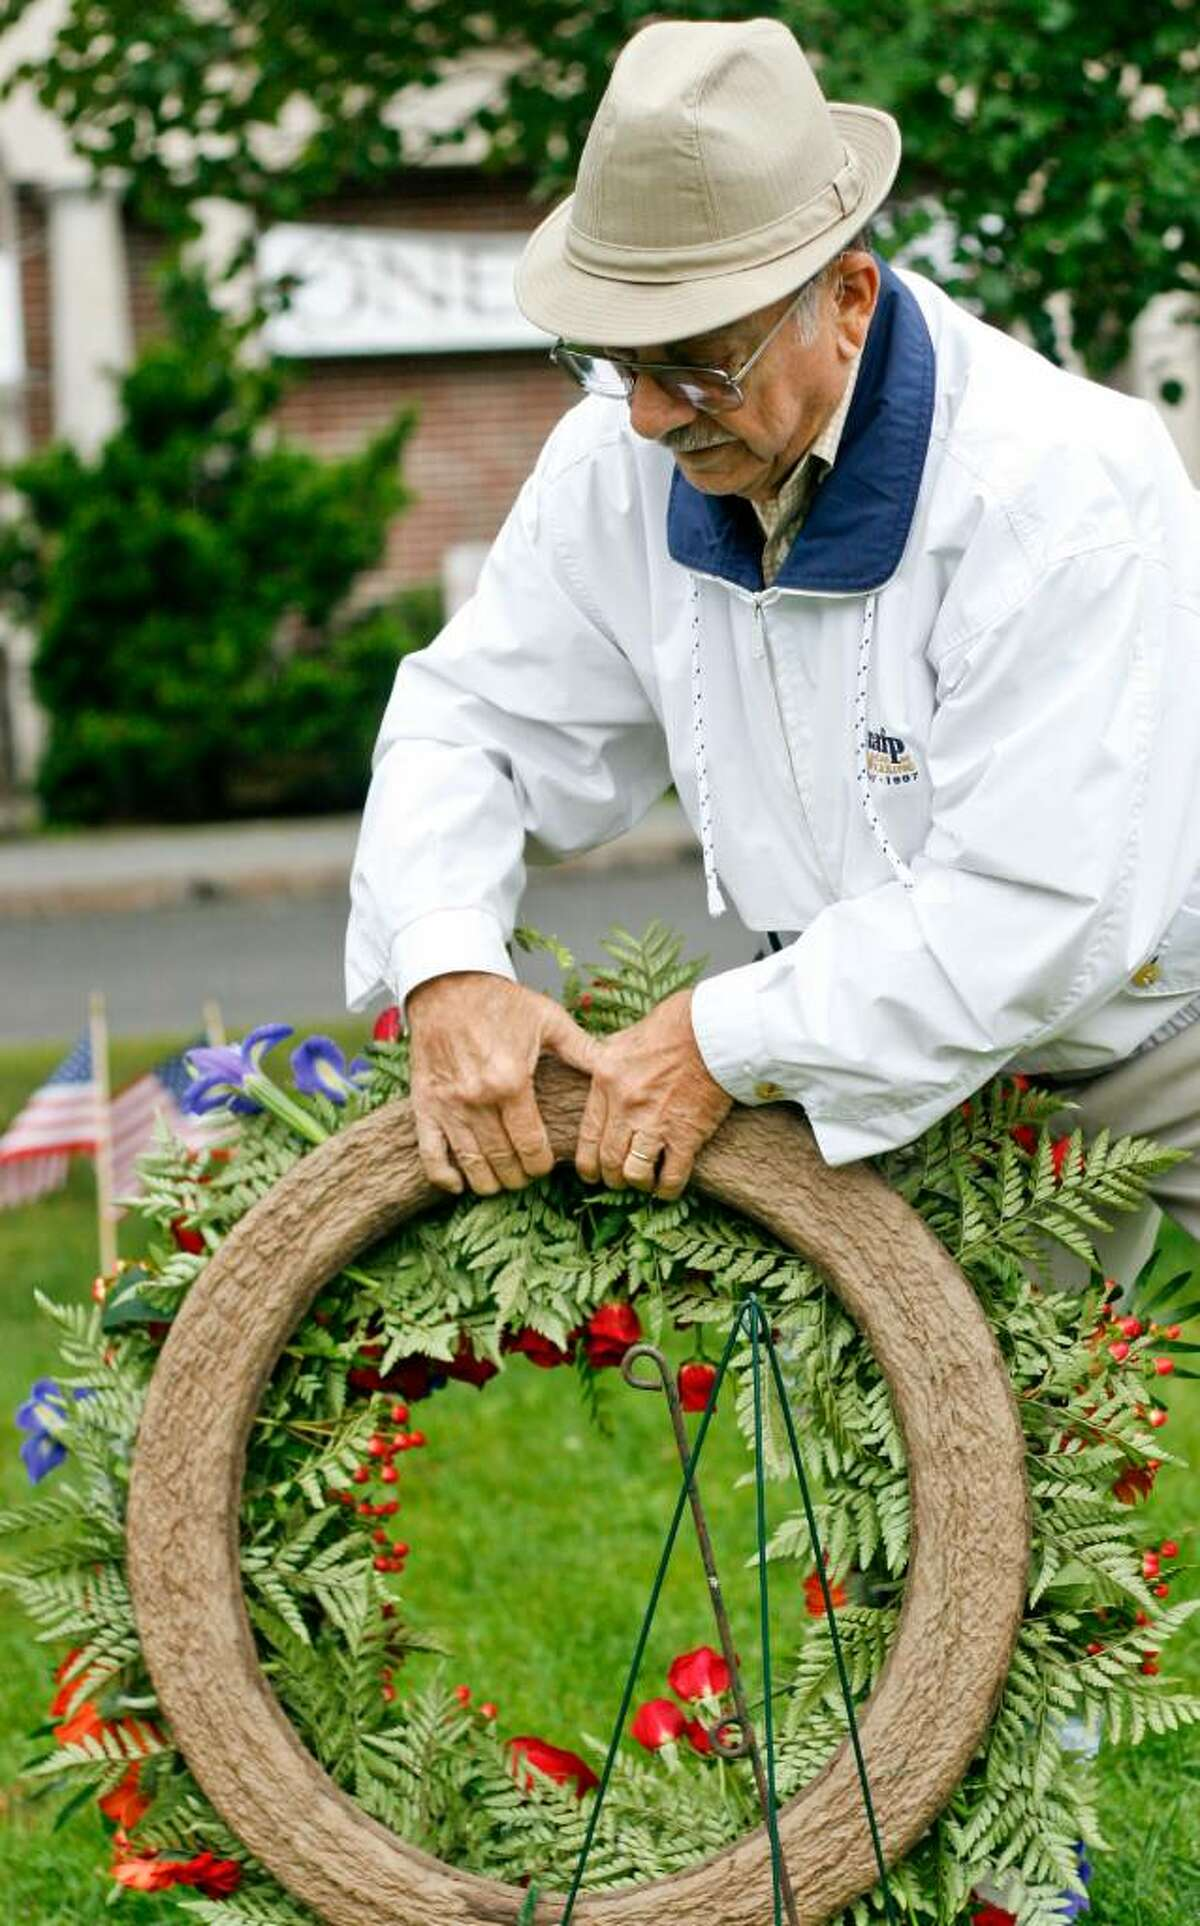 Sal Santella places a commemorative wreath on the potential site of a September 11 memorial on the library green in Easton on Friday, Sep. 11, 2009. Flags were also placed on the ground to outline the exact location of the memorial as well as honor those lost during the 2001 attack.